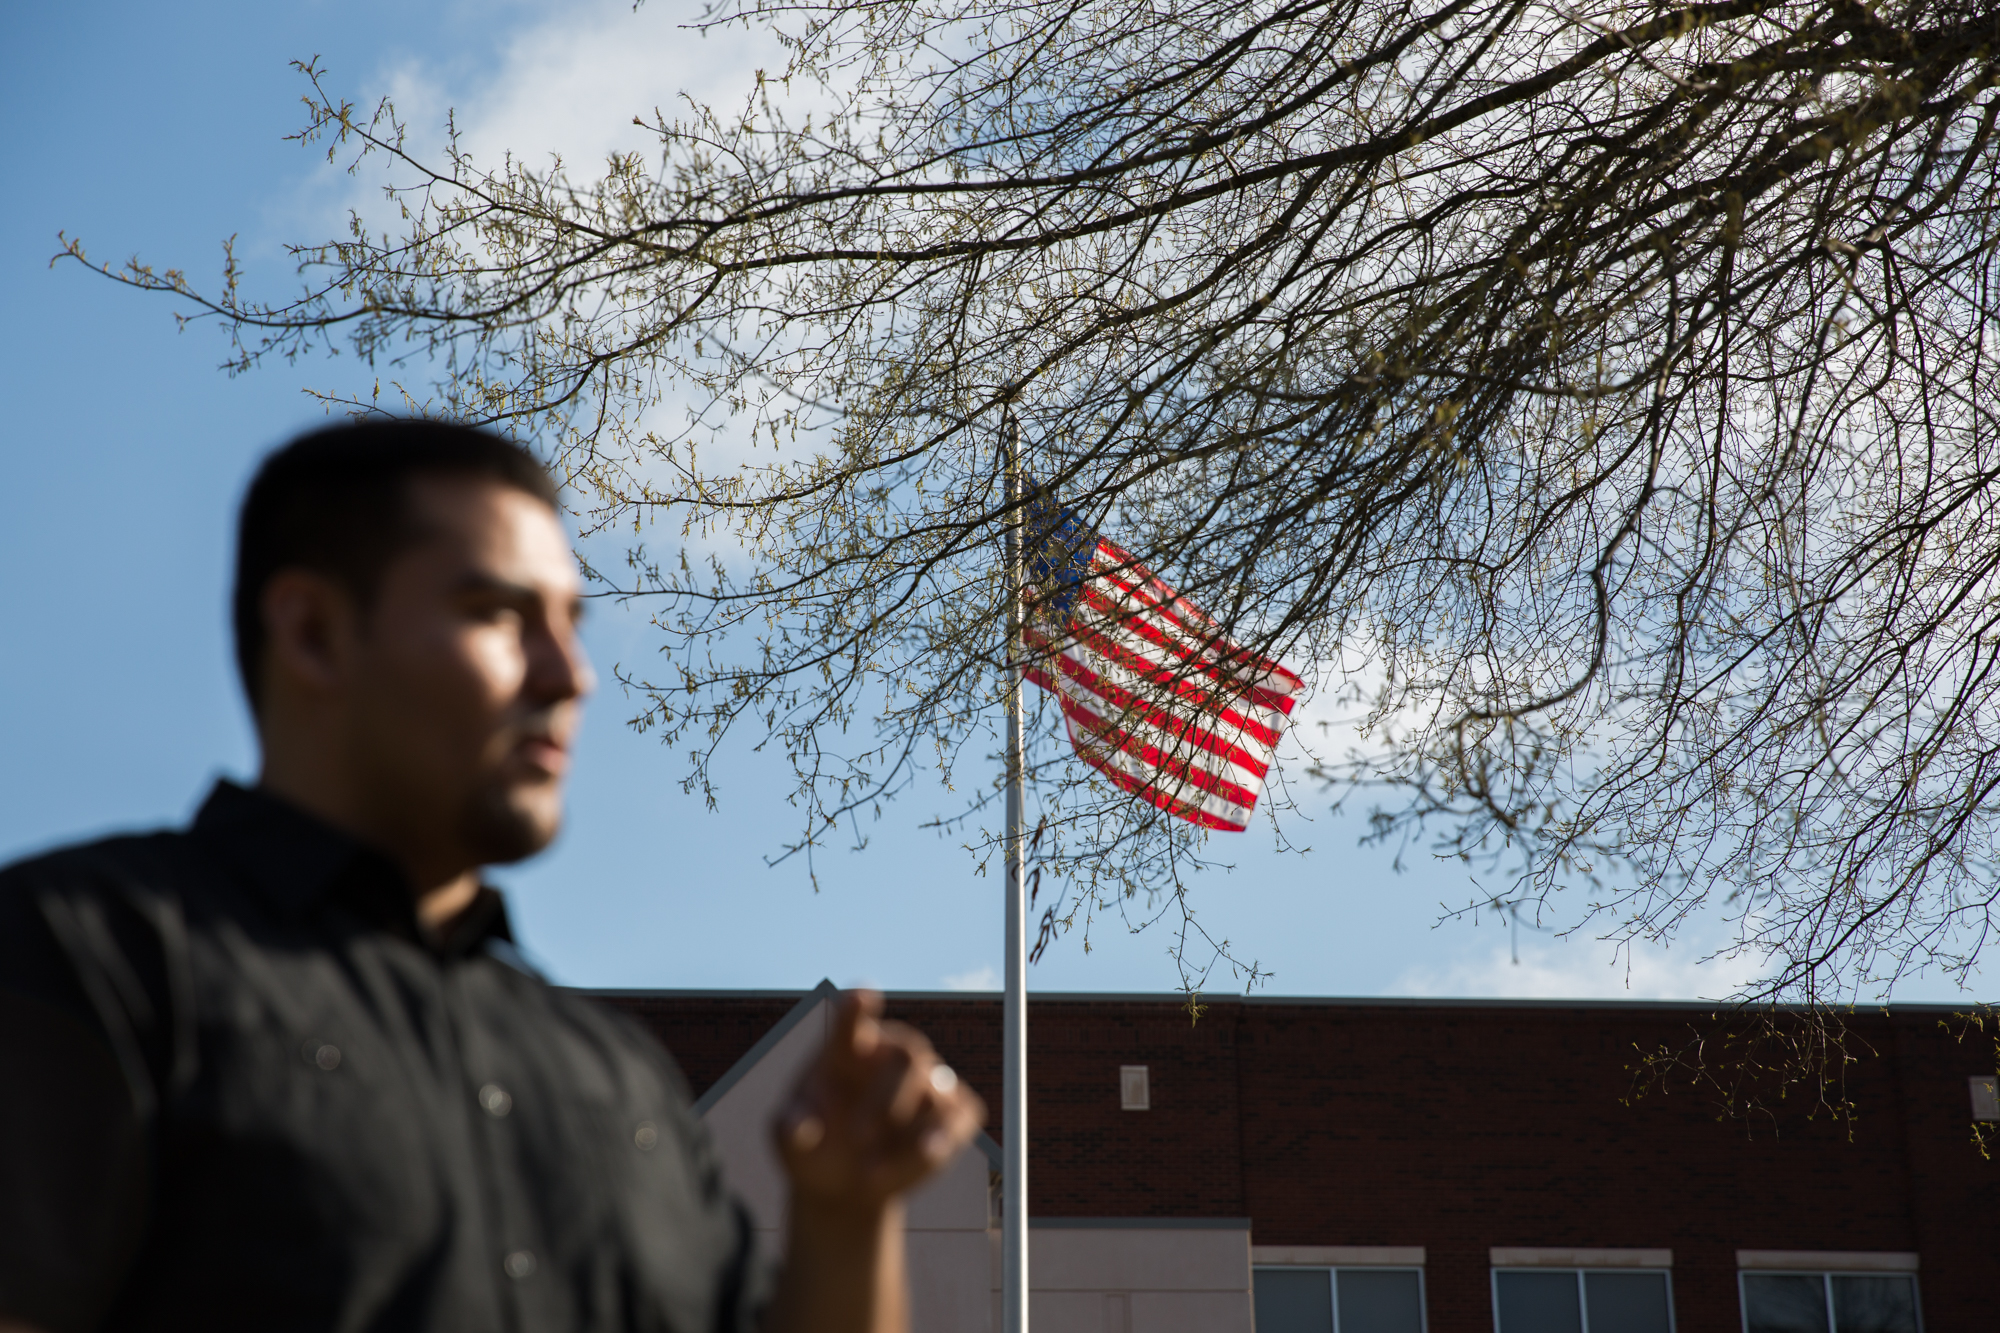 "Mendoza will wait until August until his case is determined again, but is working on the process of appealing with Vargas through marital grounds.  ""My goal is to finally be out of the grasp of this immigration loop that has affected me for so many years--become a citizen of the land I call home.  As for my life, I want to be a better person, free myself of all these chains that have been put on my life, be able to complete a nursing degree and enjoy my husband and family without fear.  I want to help my community--work in a great hospital taking care of people and helping them get better.  I want to help my family, be able to provide for my parents who have fought and worked so long to give my siblings and I a better life.  I can see as time passes they are aging more; I want to be stable to care for them as they did for me.  That's why I can't give up."" said Mendoza."